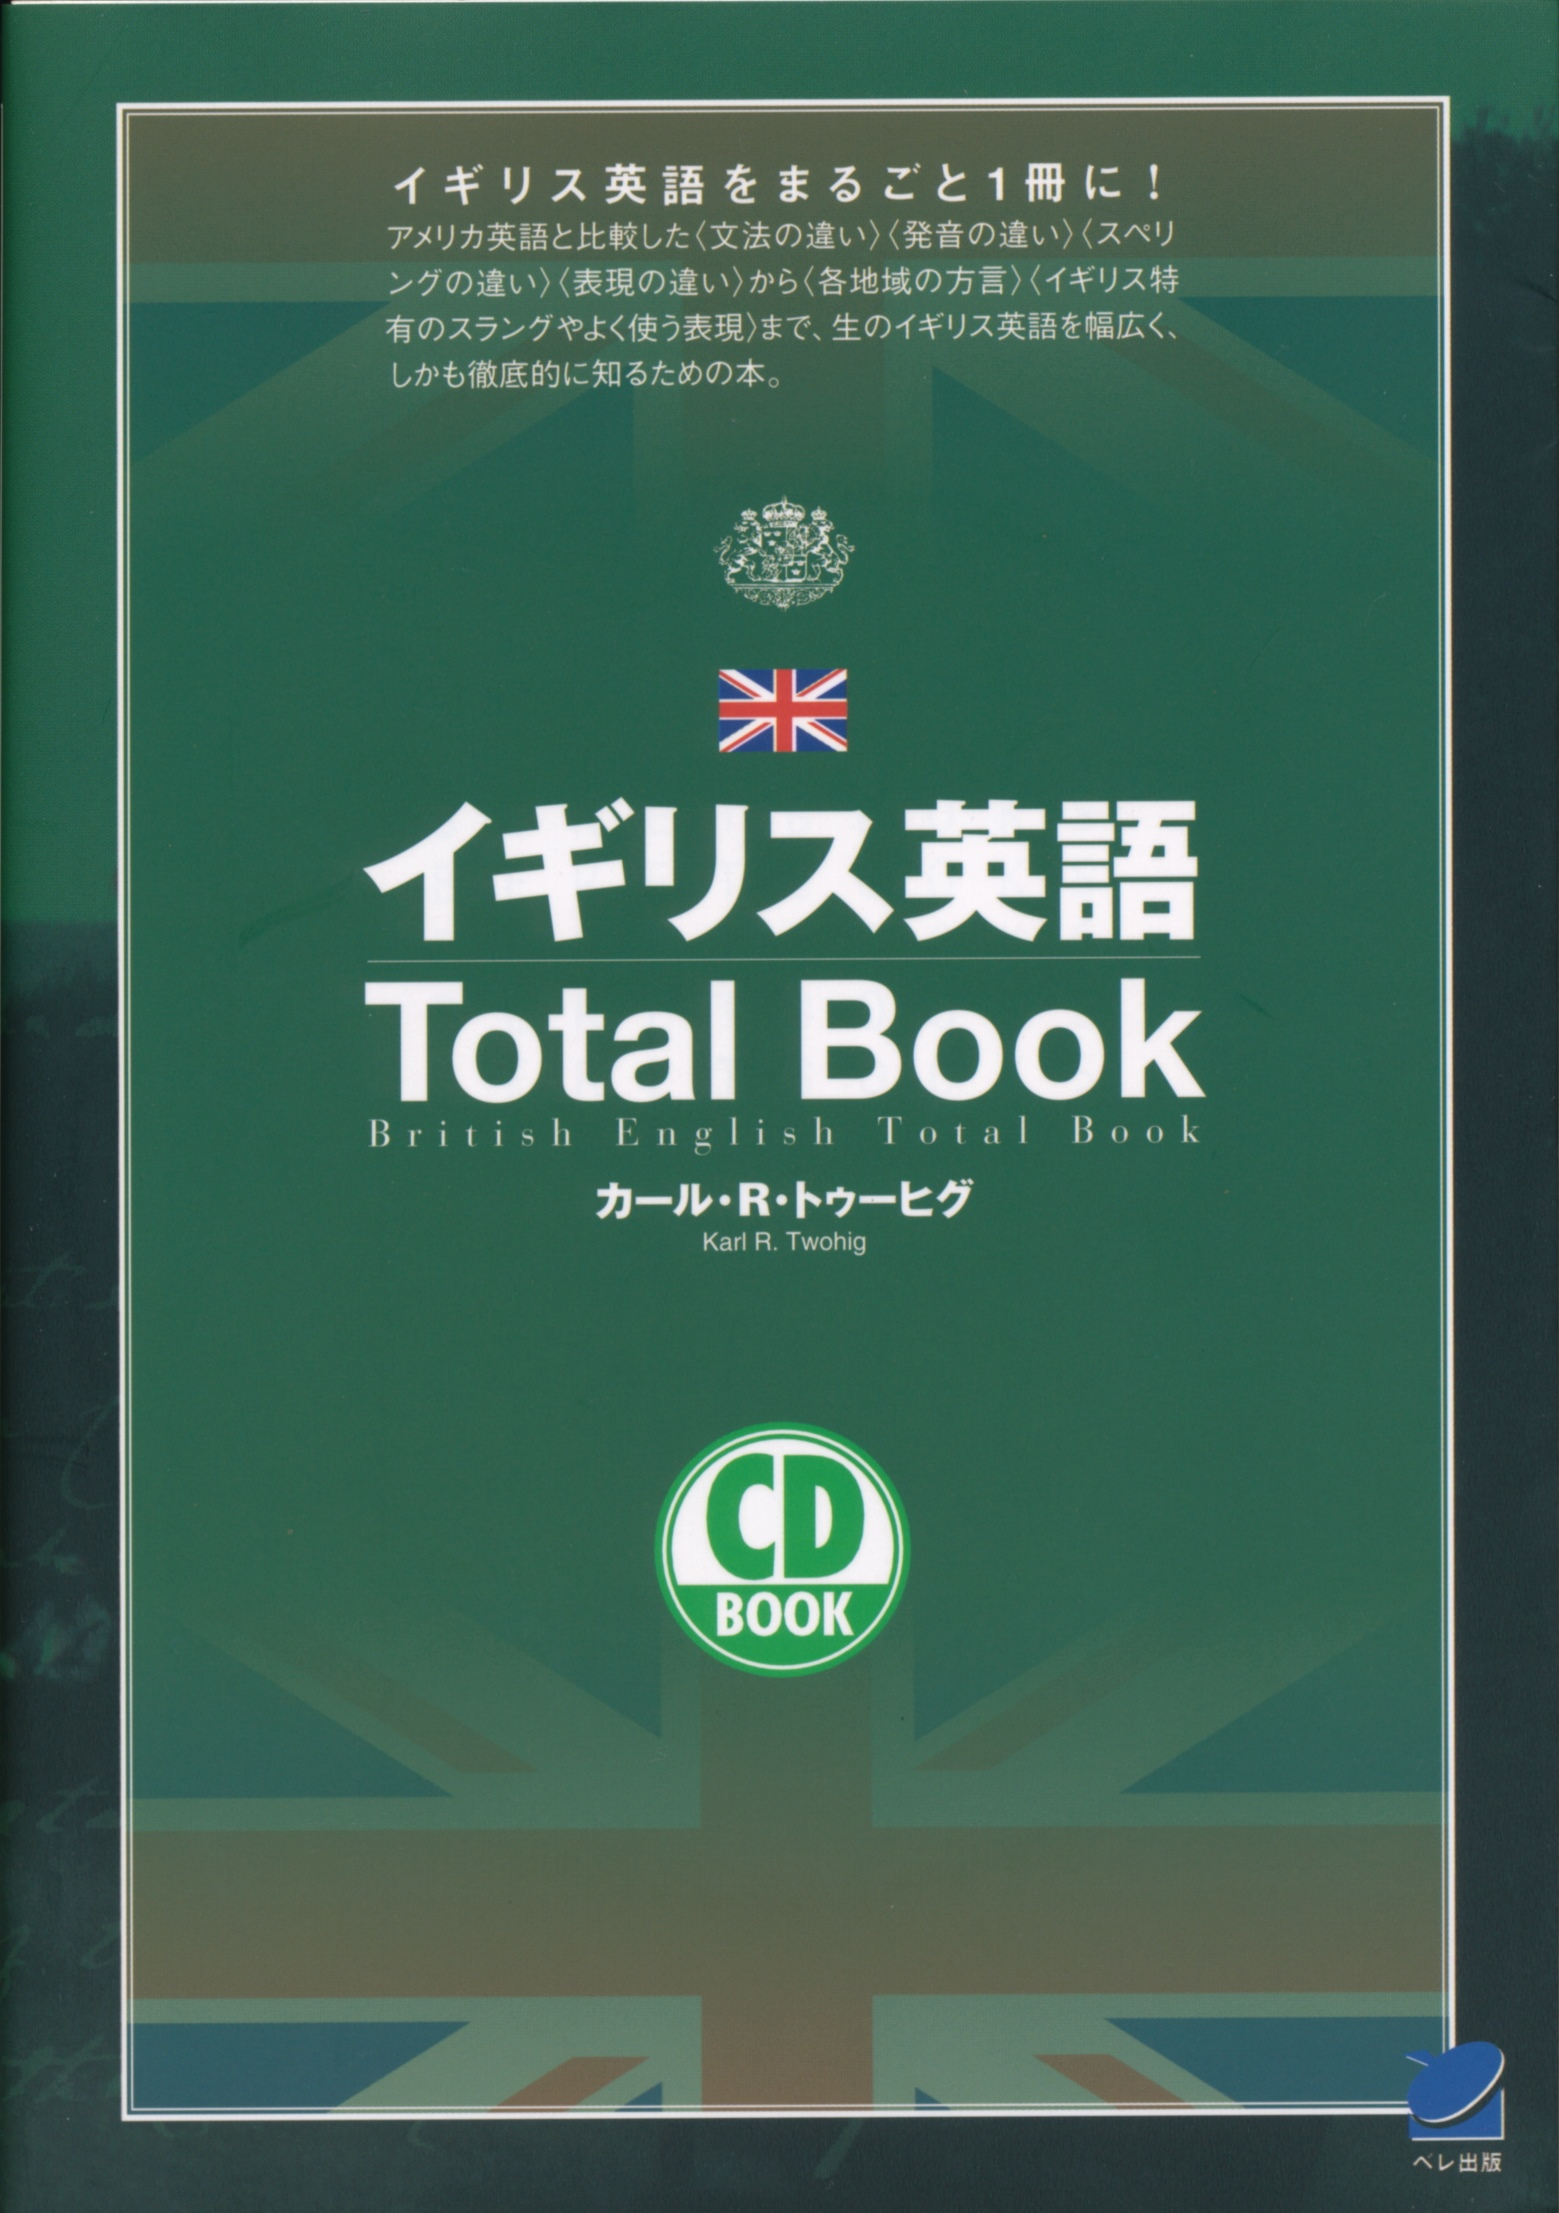 イギリス英語Total Book CD BOOK